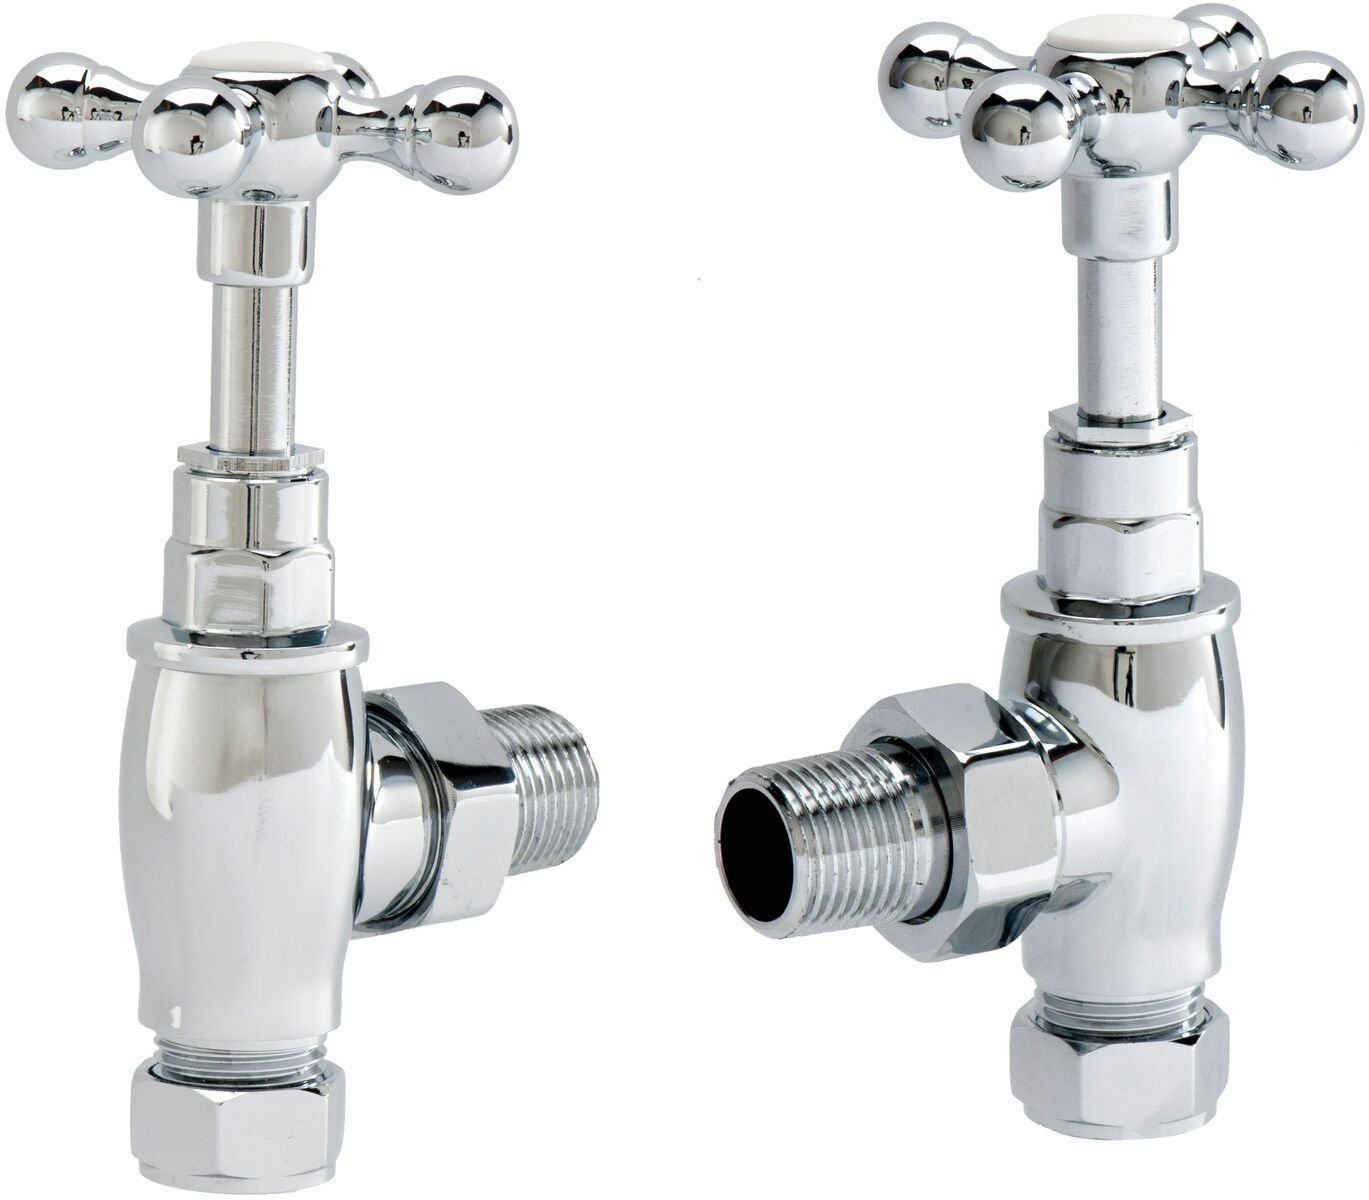 Cassellie Angled Cross Head Radiator Valves - Pair - Chrome